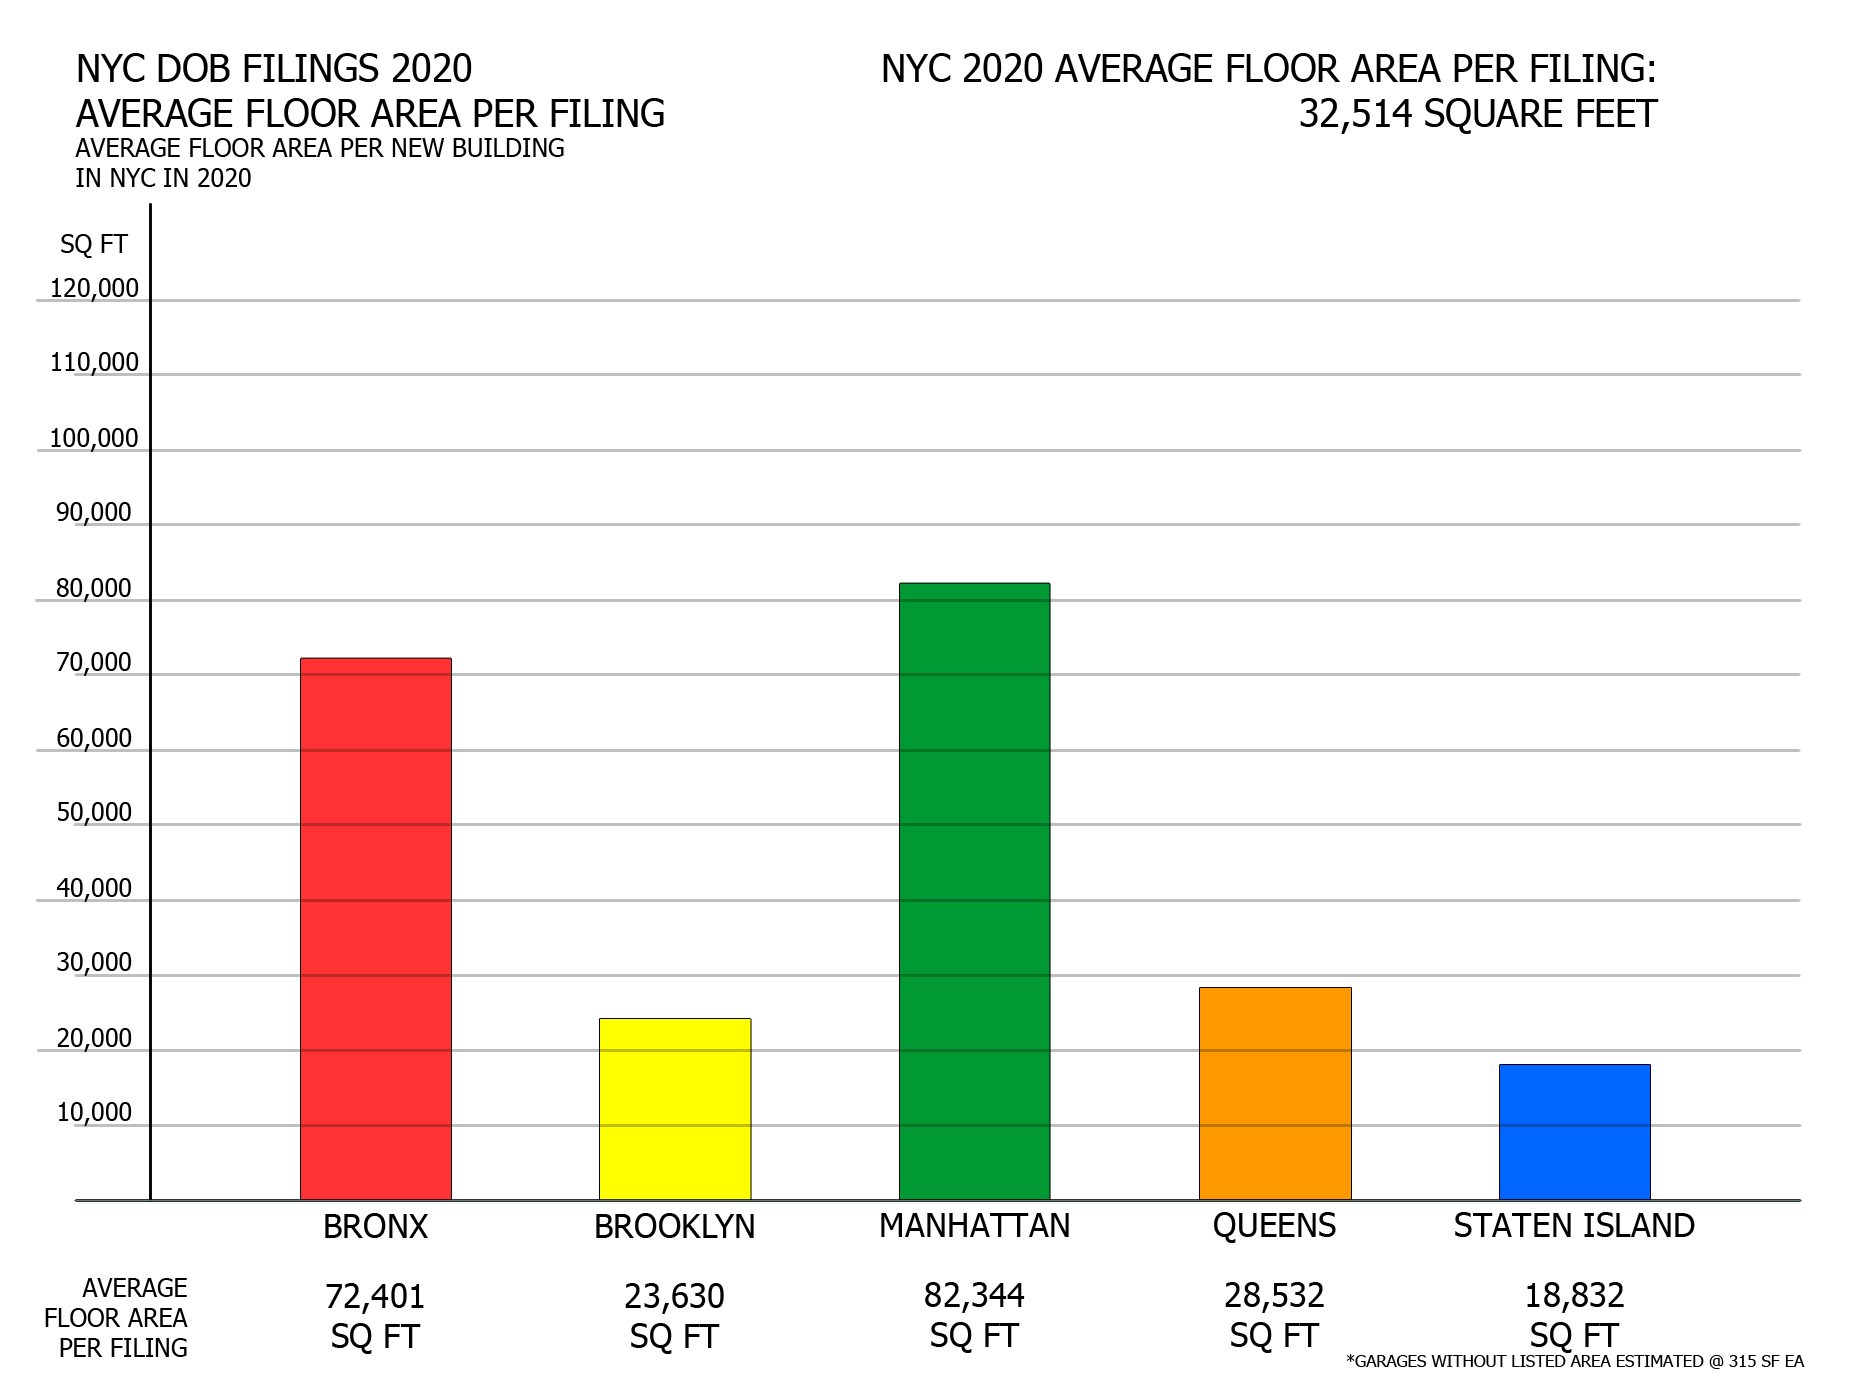 NYC DOB filings in 2020 by average floor area. Credit: Vitali Ogorodnikov